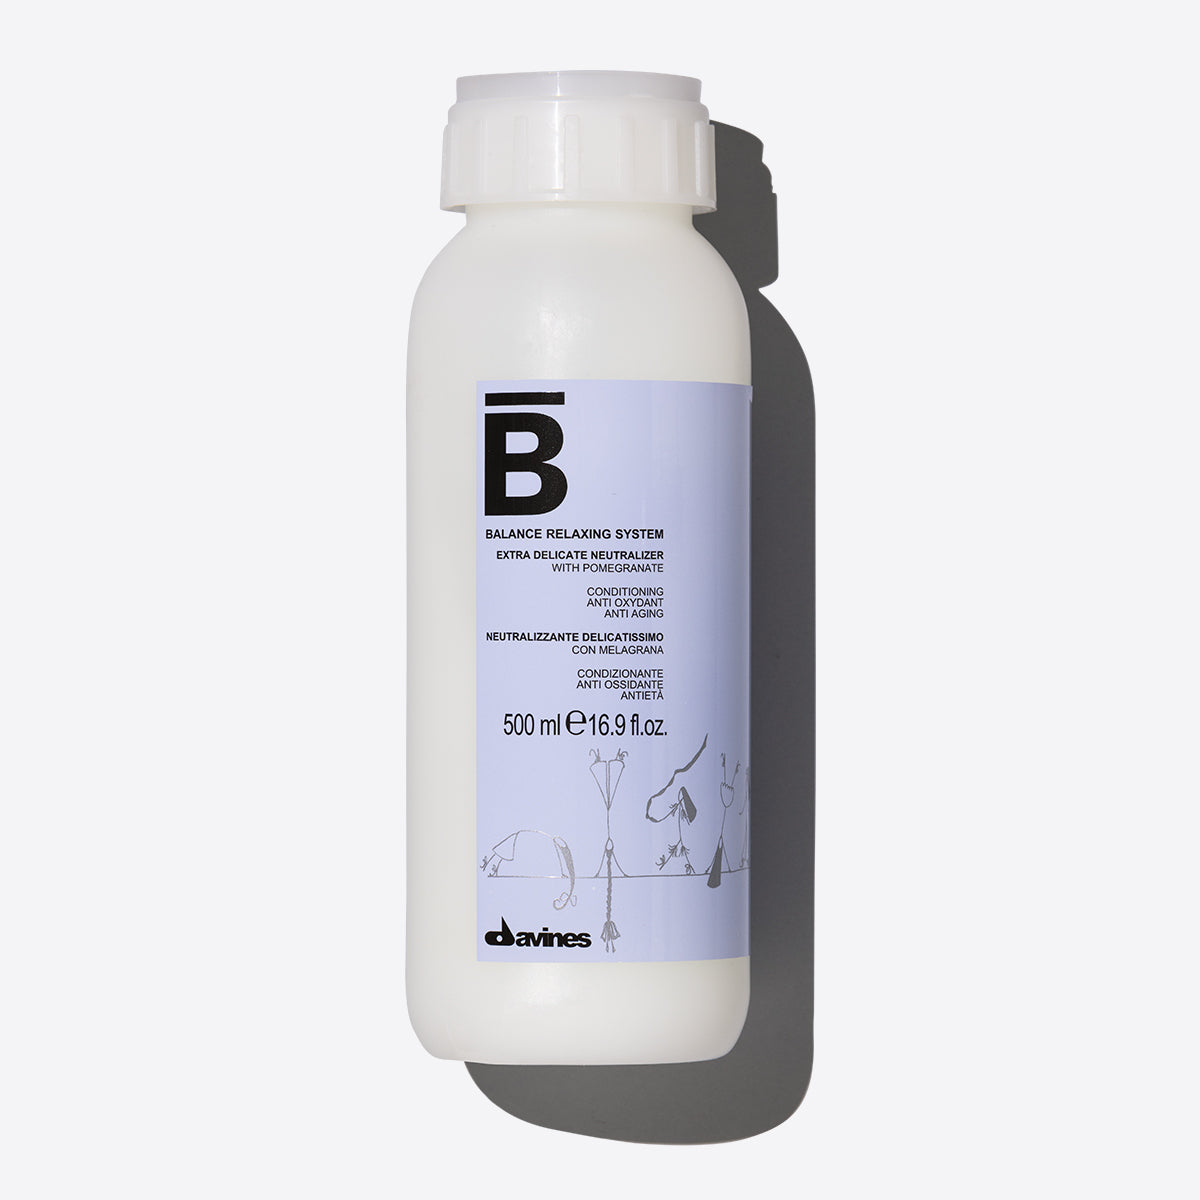 Extra Delicate Neutralizer 1  500 ml Davines